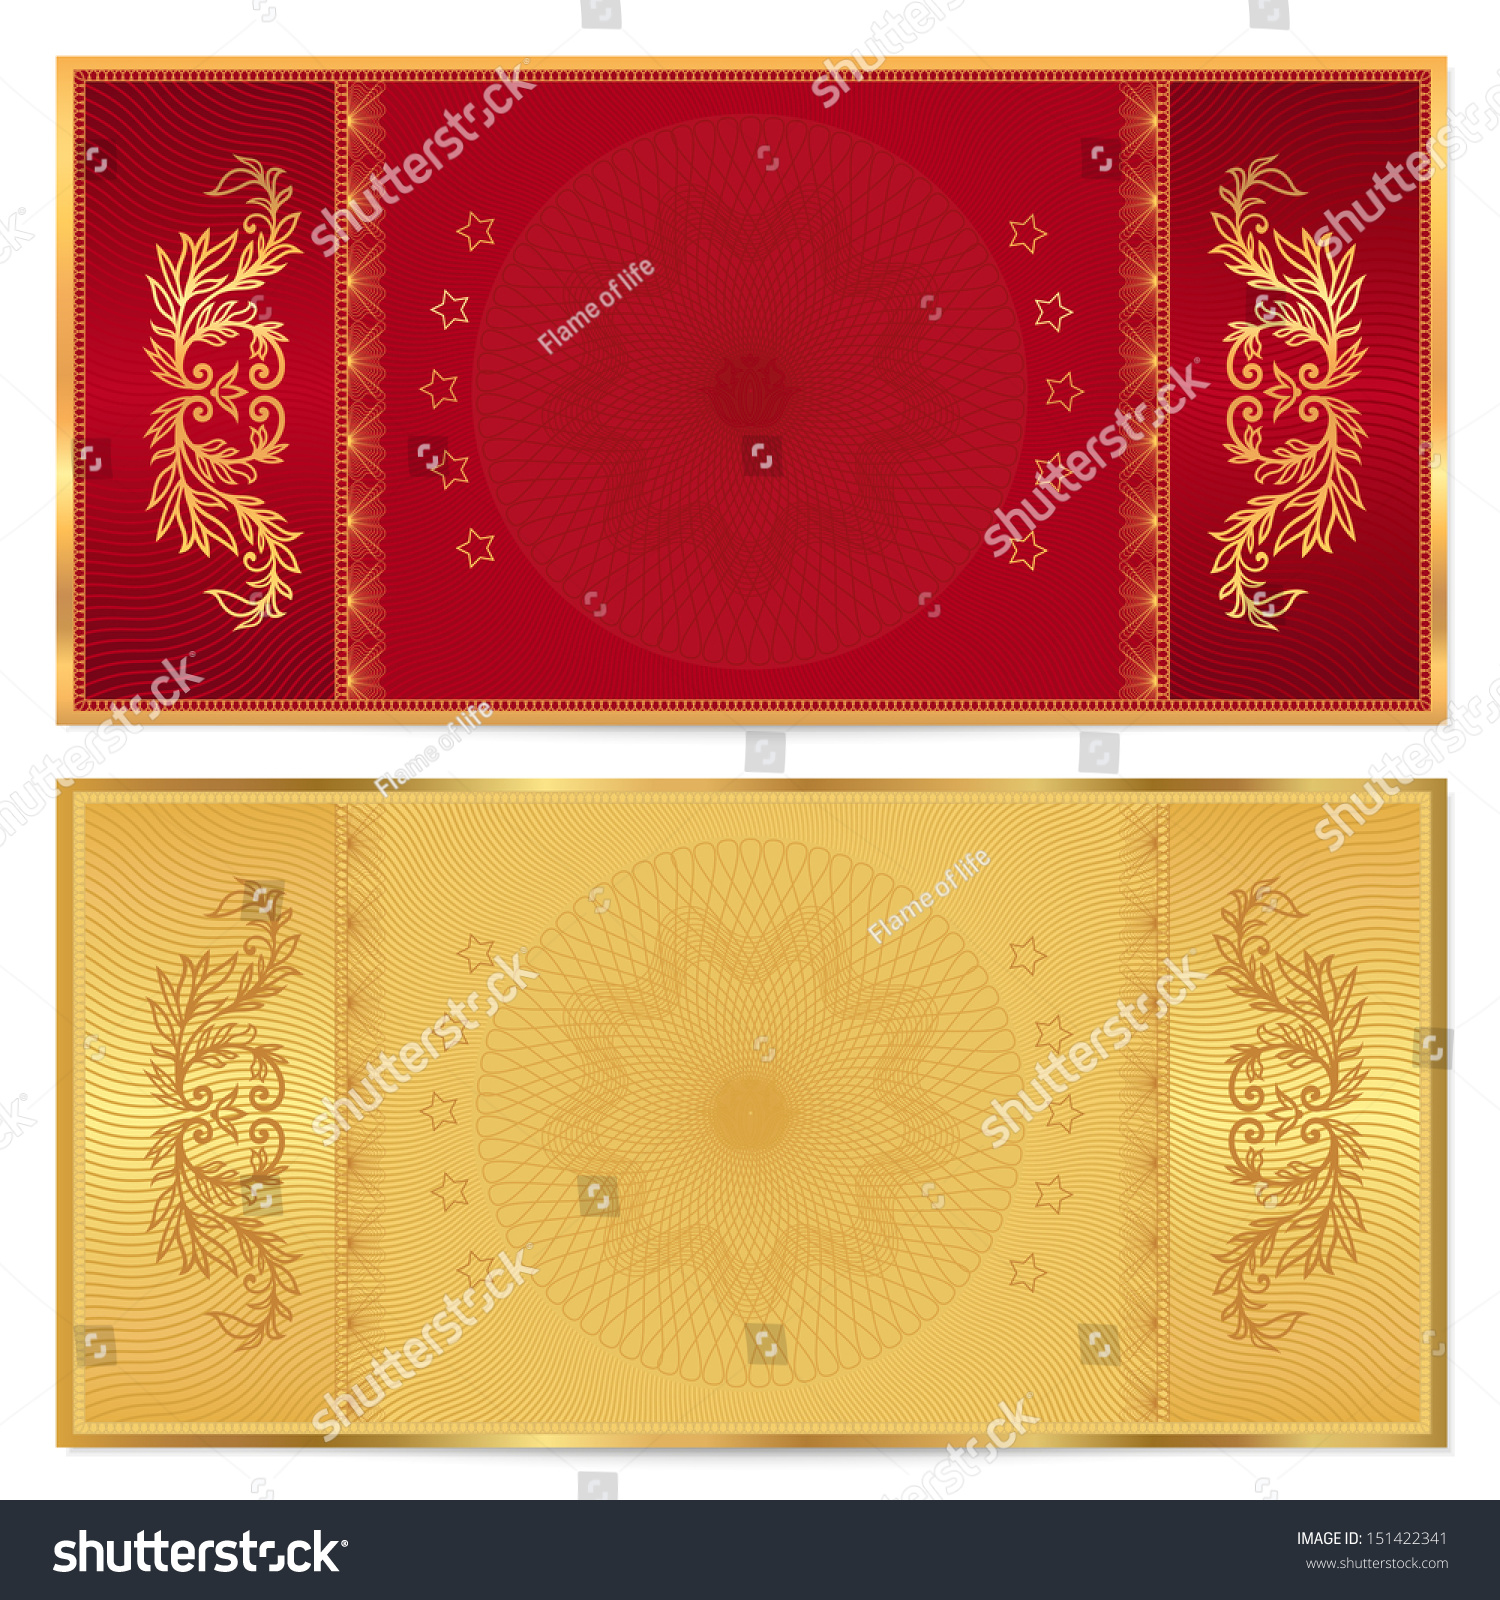 Gold ticket voucher gift certificate coupon stock illustration gold ticket voucher gift certificate coupon template with floral border background design yadclub Choice Image